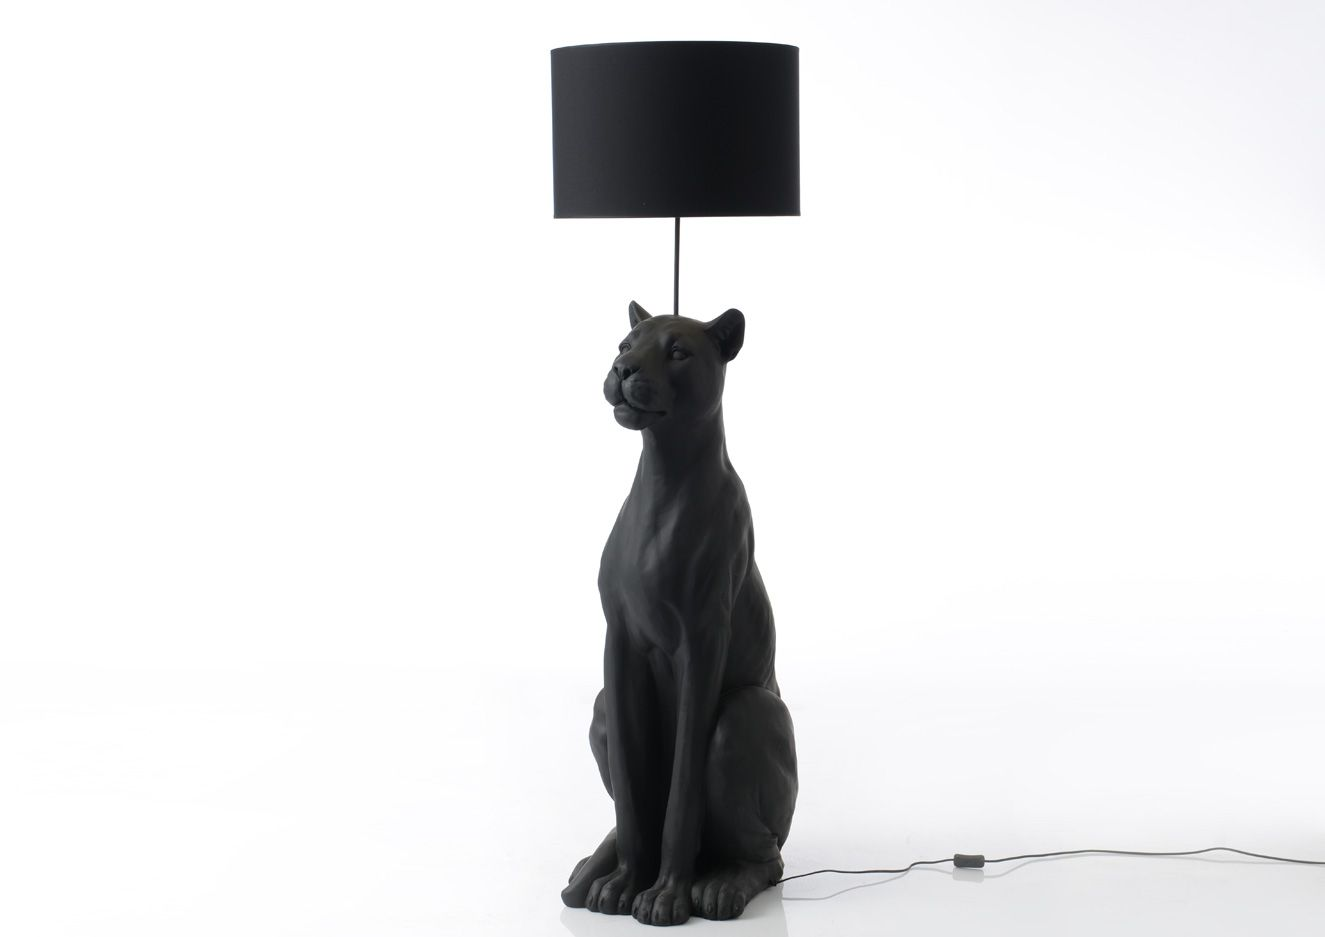 Lampe De Lecture Panthere Amadeus Decoration Luminaire Lampe Light Panthere Homesweethome Interiord Luminaire Lampe De Lecture Decoration Appartement